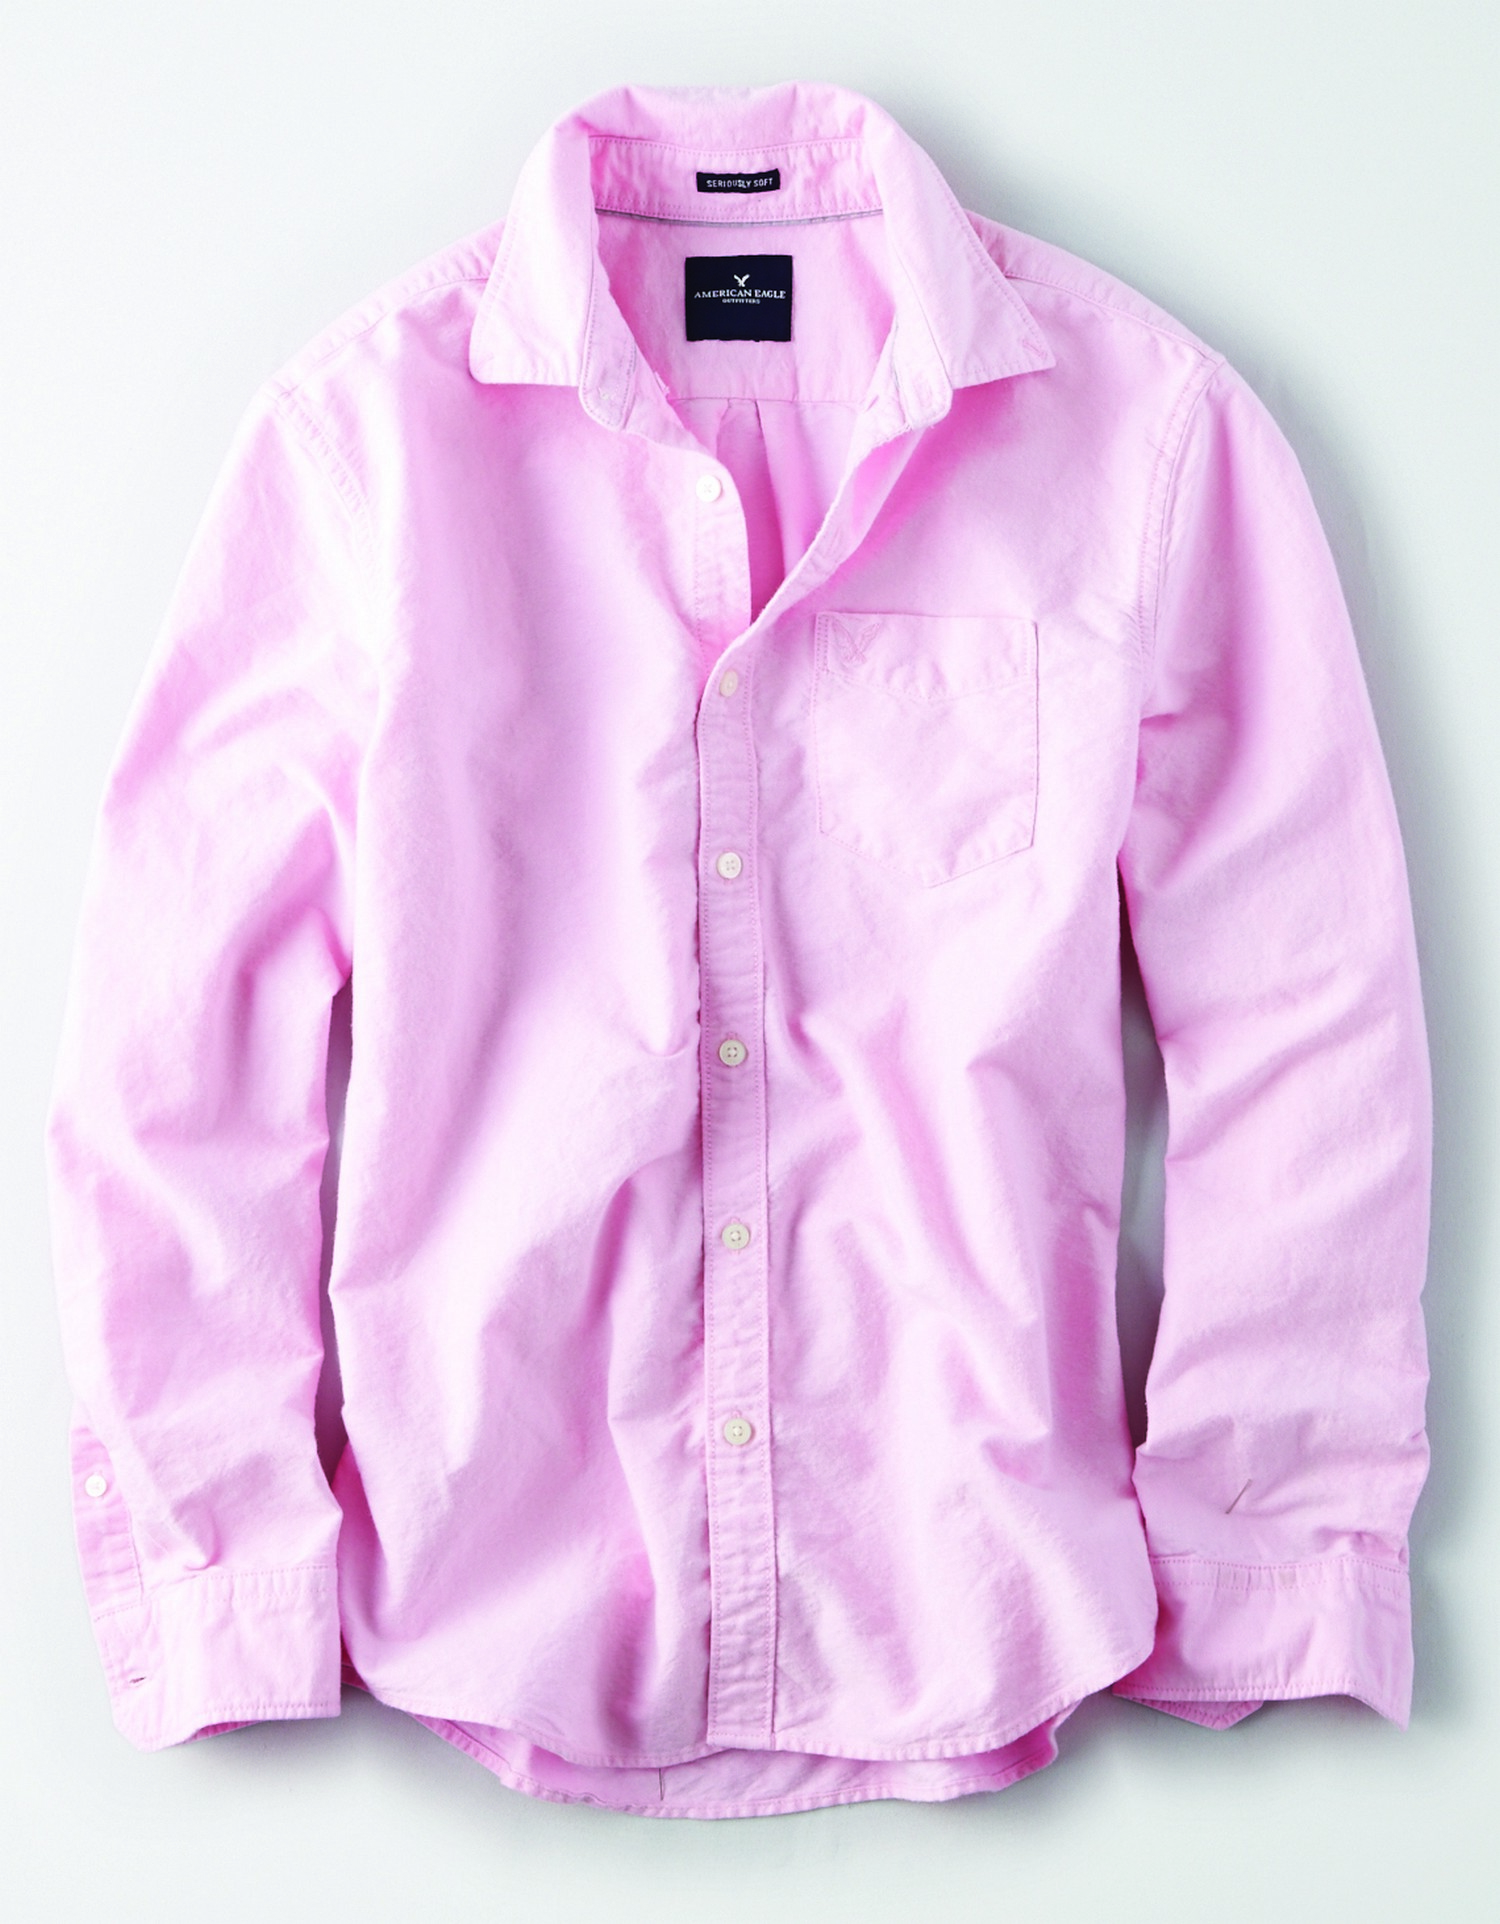 AE INTL  - M -YD SOLID OXFORD - Pink - Left chest pocket with embroidered eagle -l/s button down - cream buttons - BG